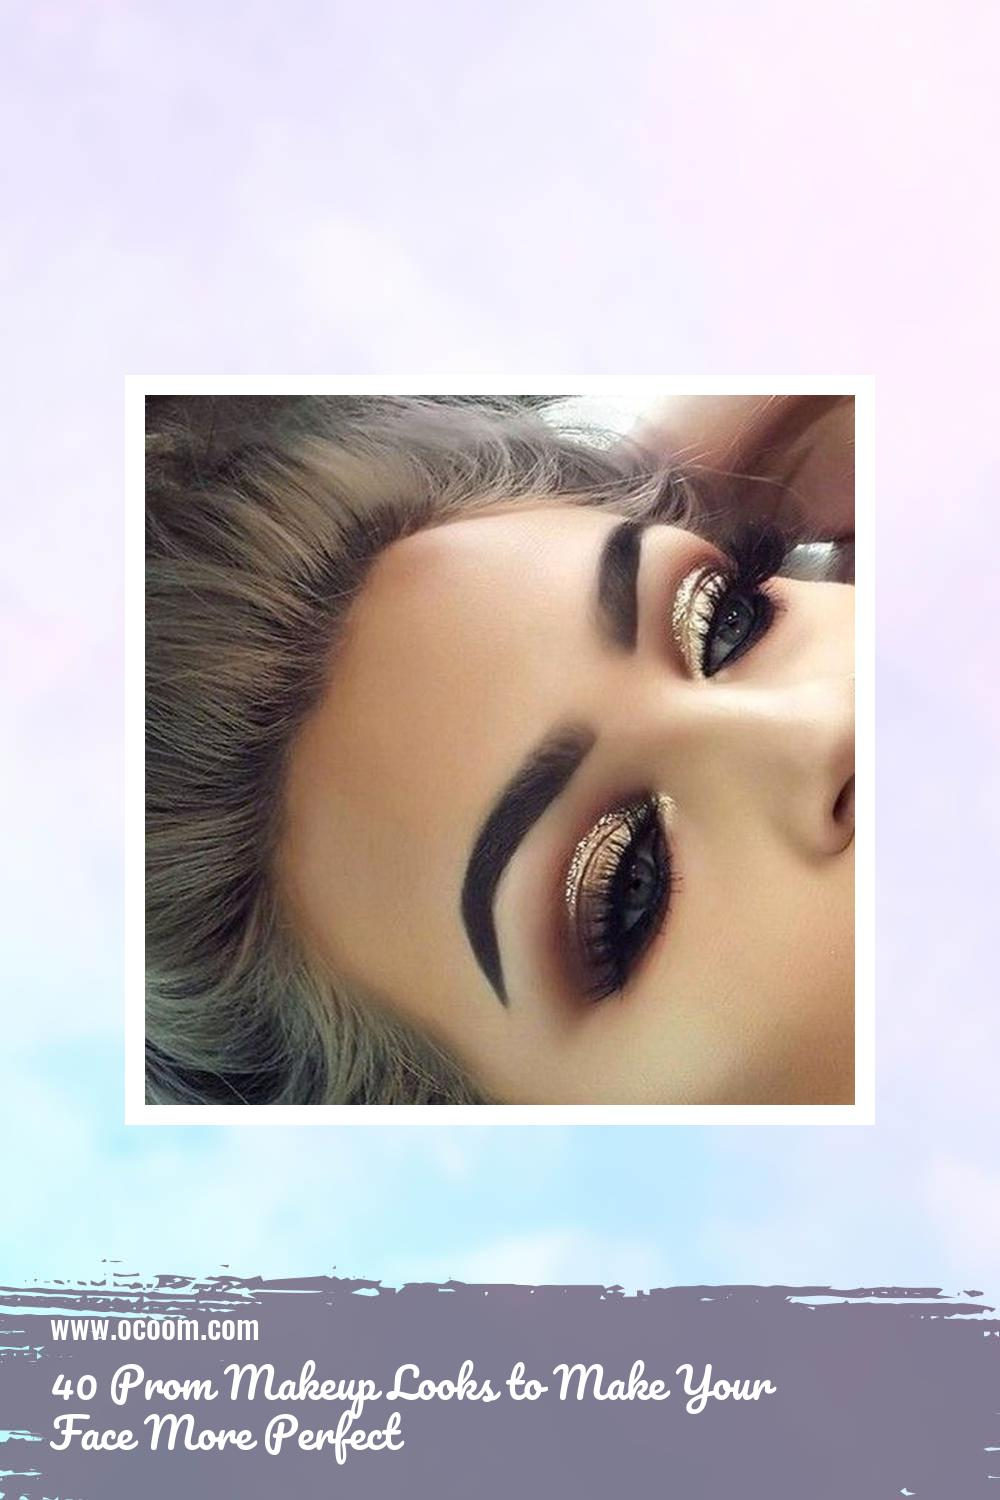 40 Prom Makeup Looks to Make Your Face More Perfect 39